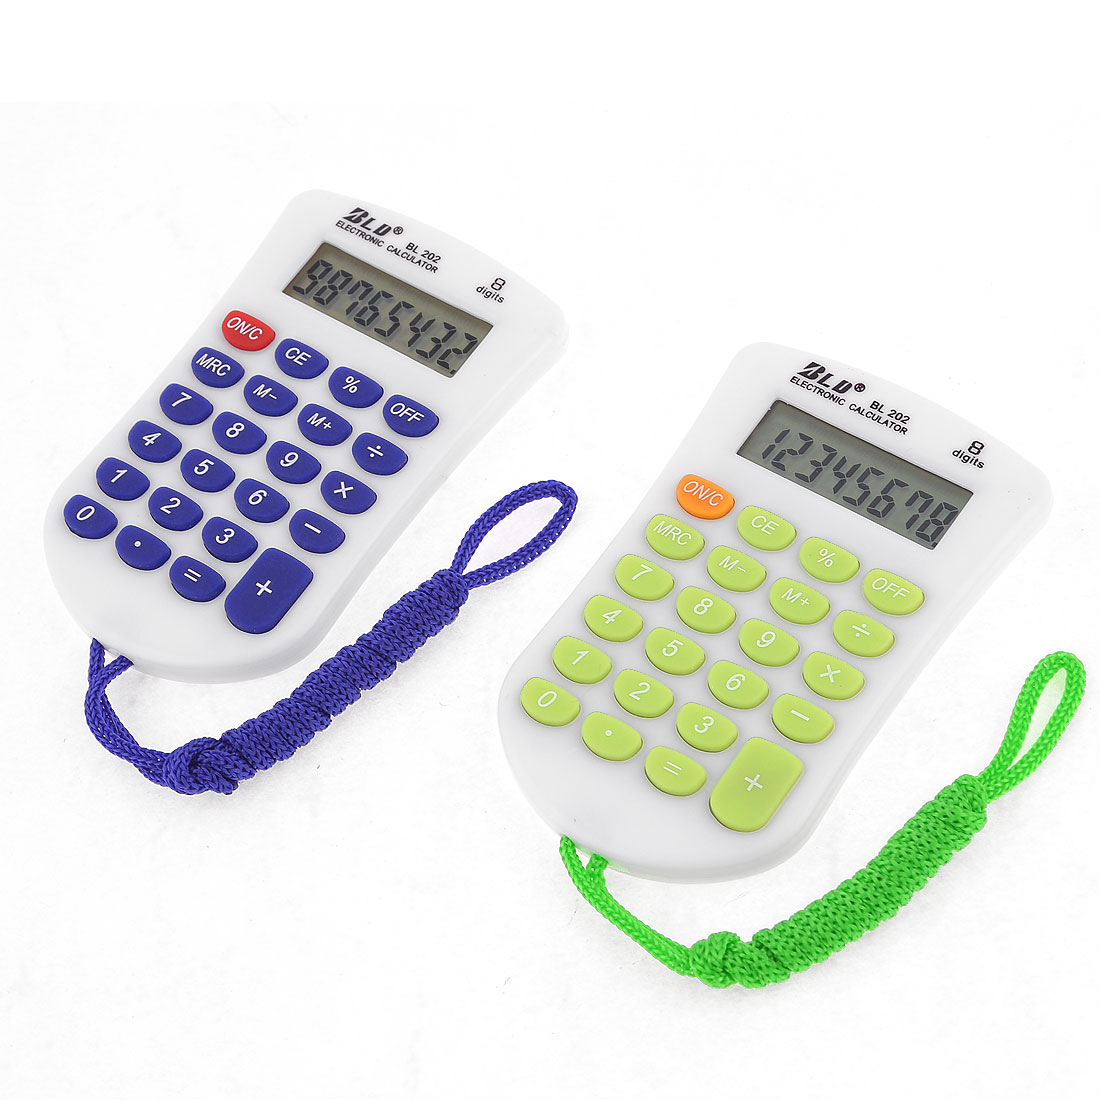 2 Pcs LCD Display 23 Rubber Keys Electronic Calculator White Blue Green